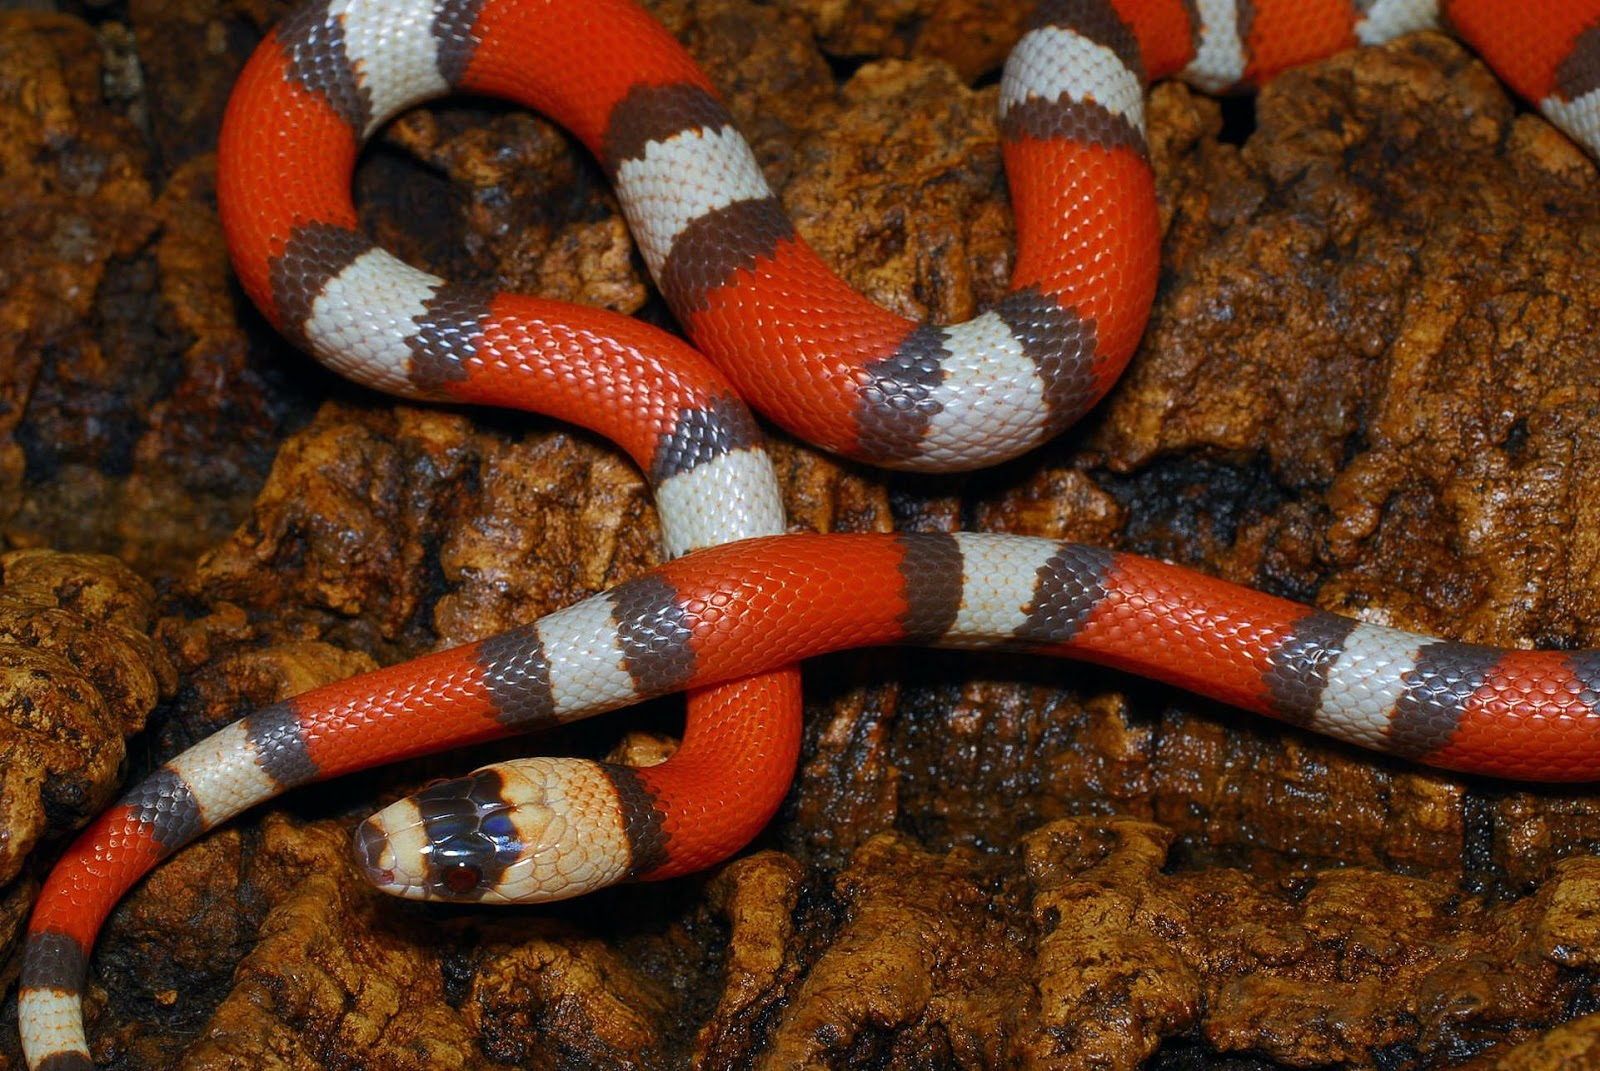 The Most Beautiful Snakes In The World - ΤΑ ΟΜΟΡΦΟΤΕΡΑ ...